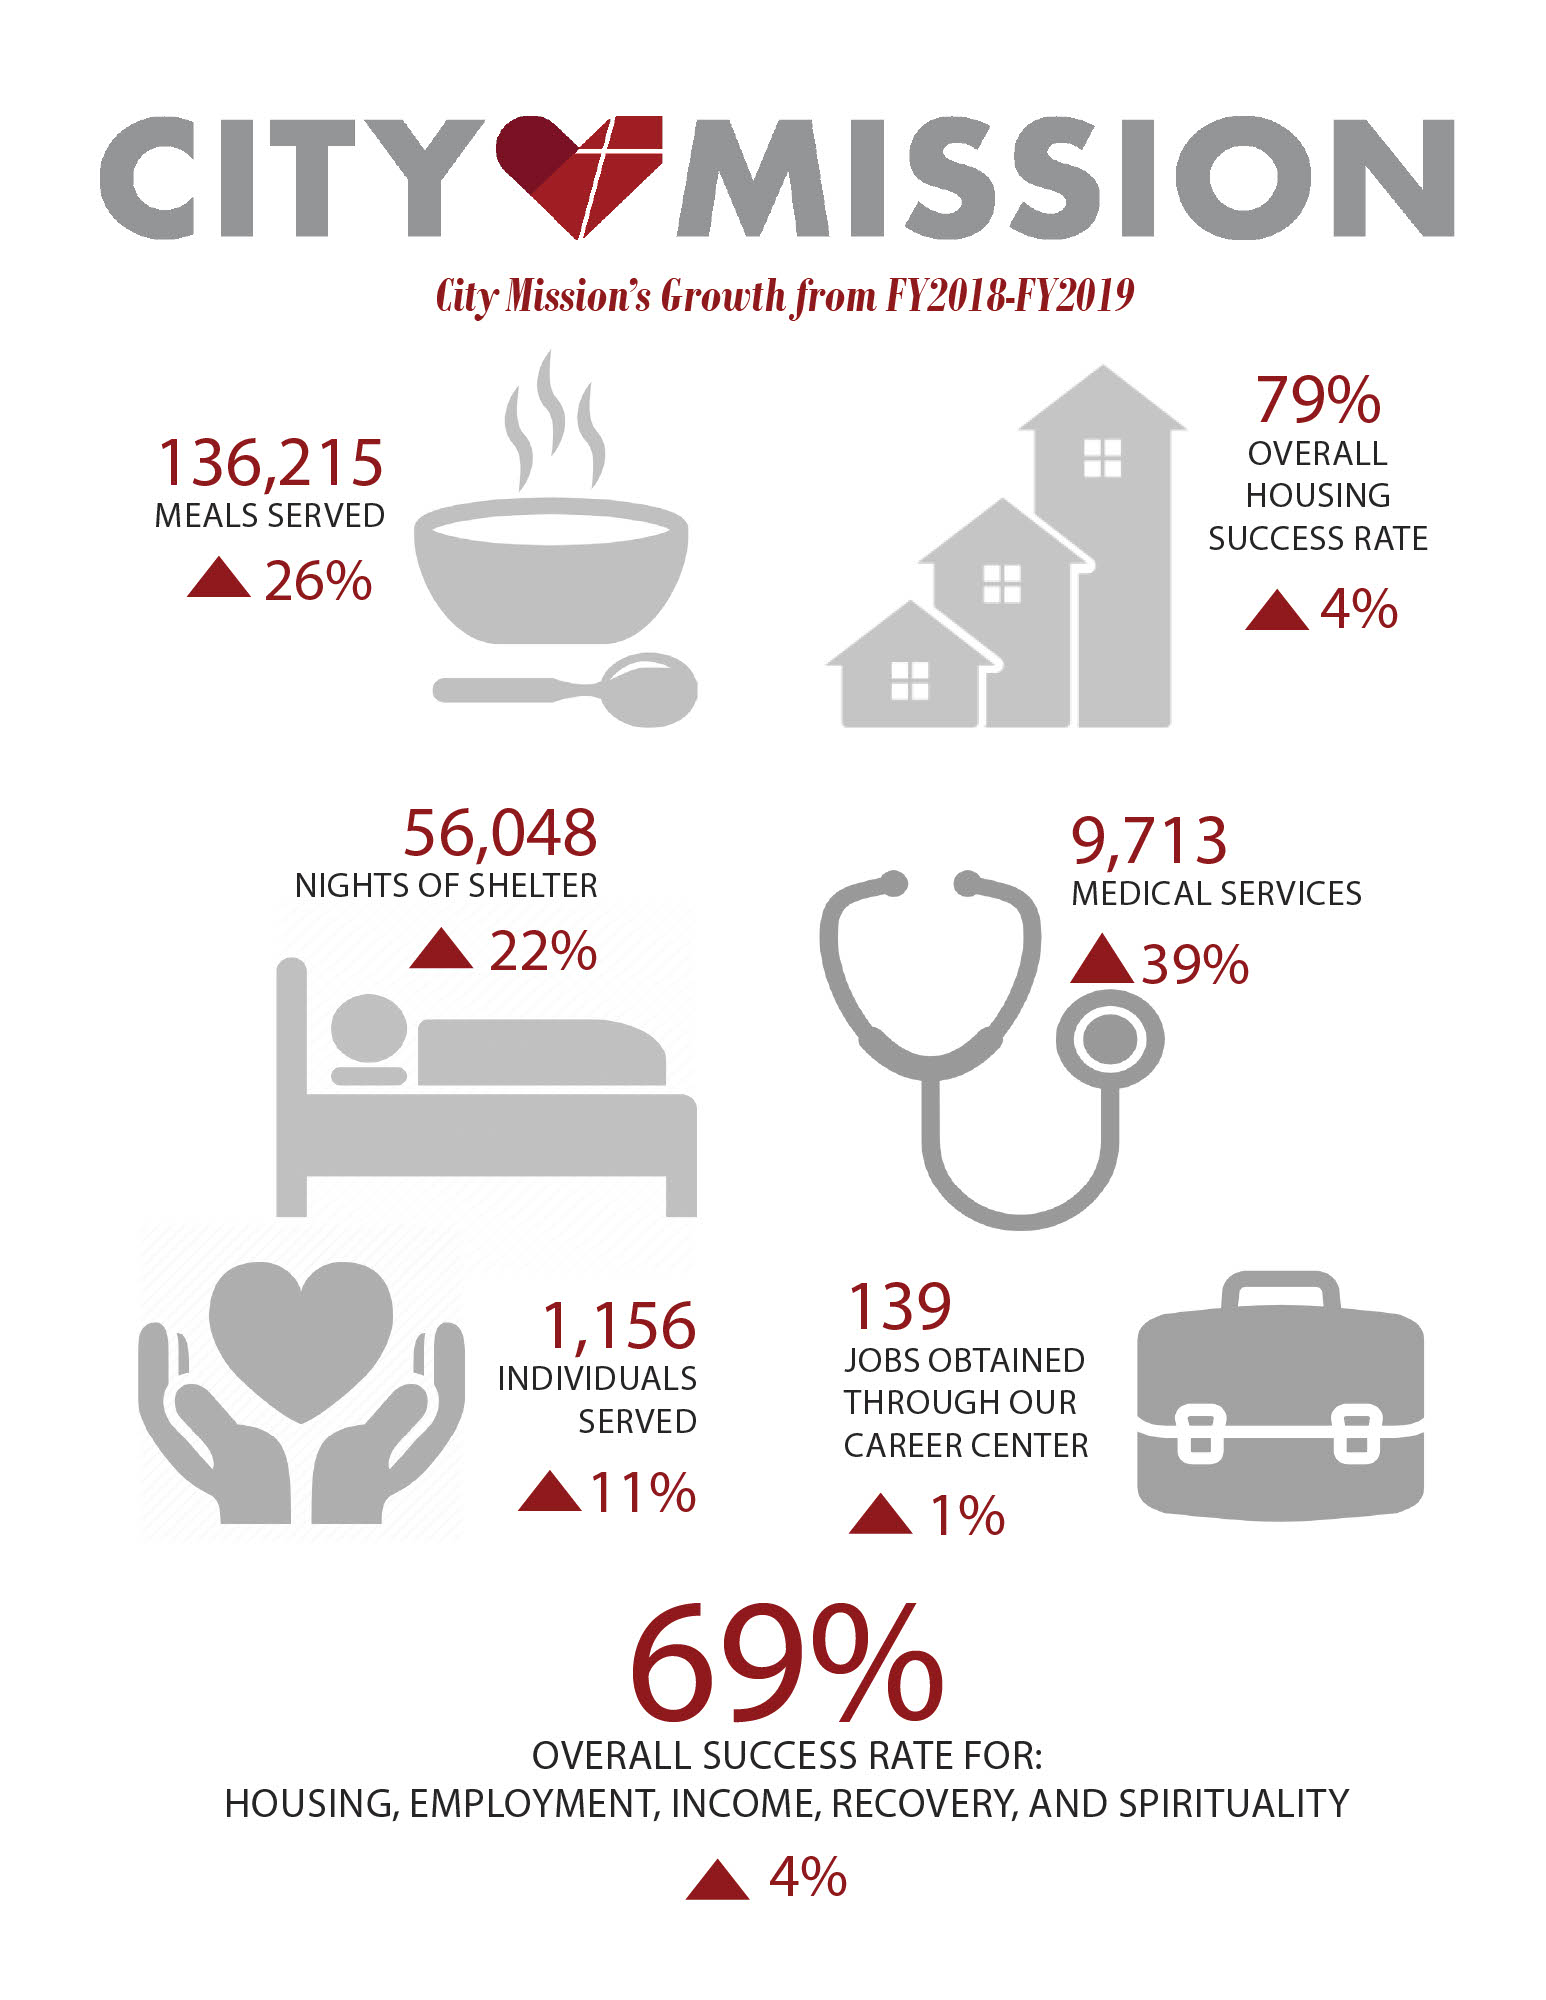 city mission impact infographic